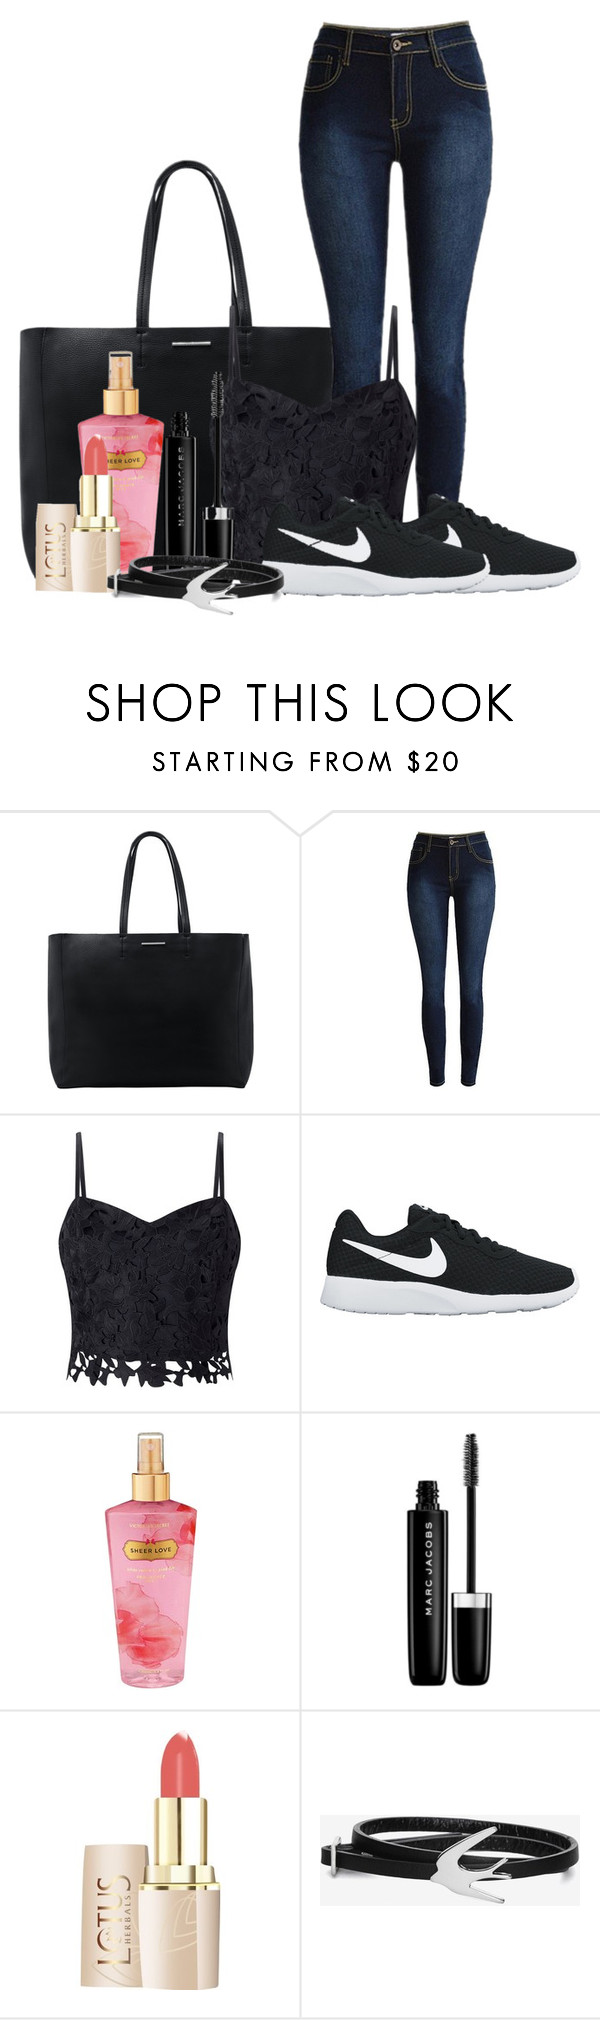 """My sis"" by agnes-wistedt ❤ liked on Polyvore featuring MANGO, Lipsy, NIKE, Victoria's Secret, Marc Jacobs and McQ by Alexander McQueen"